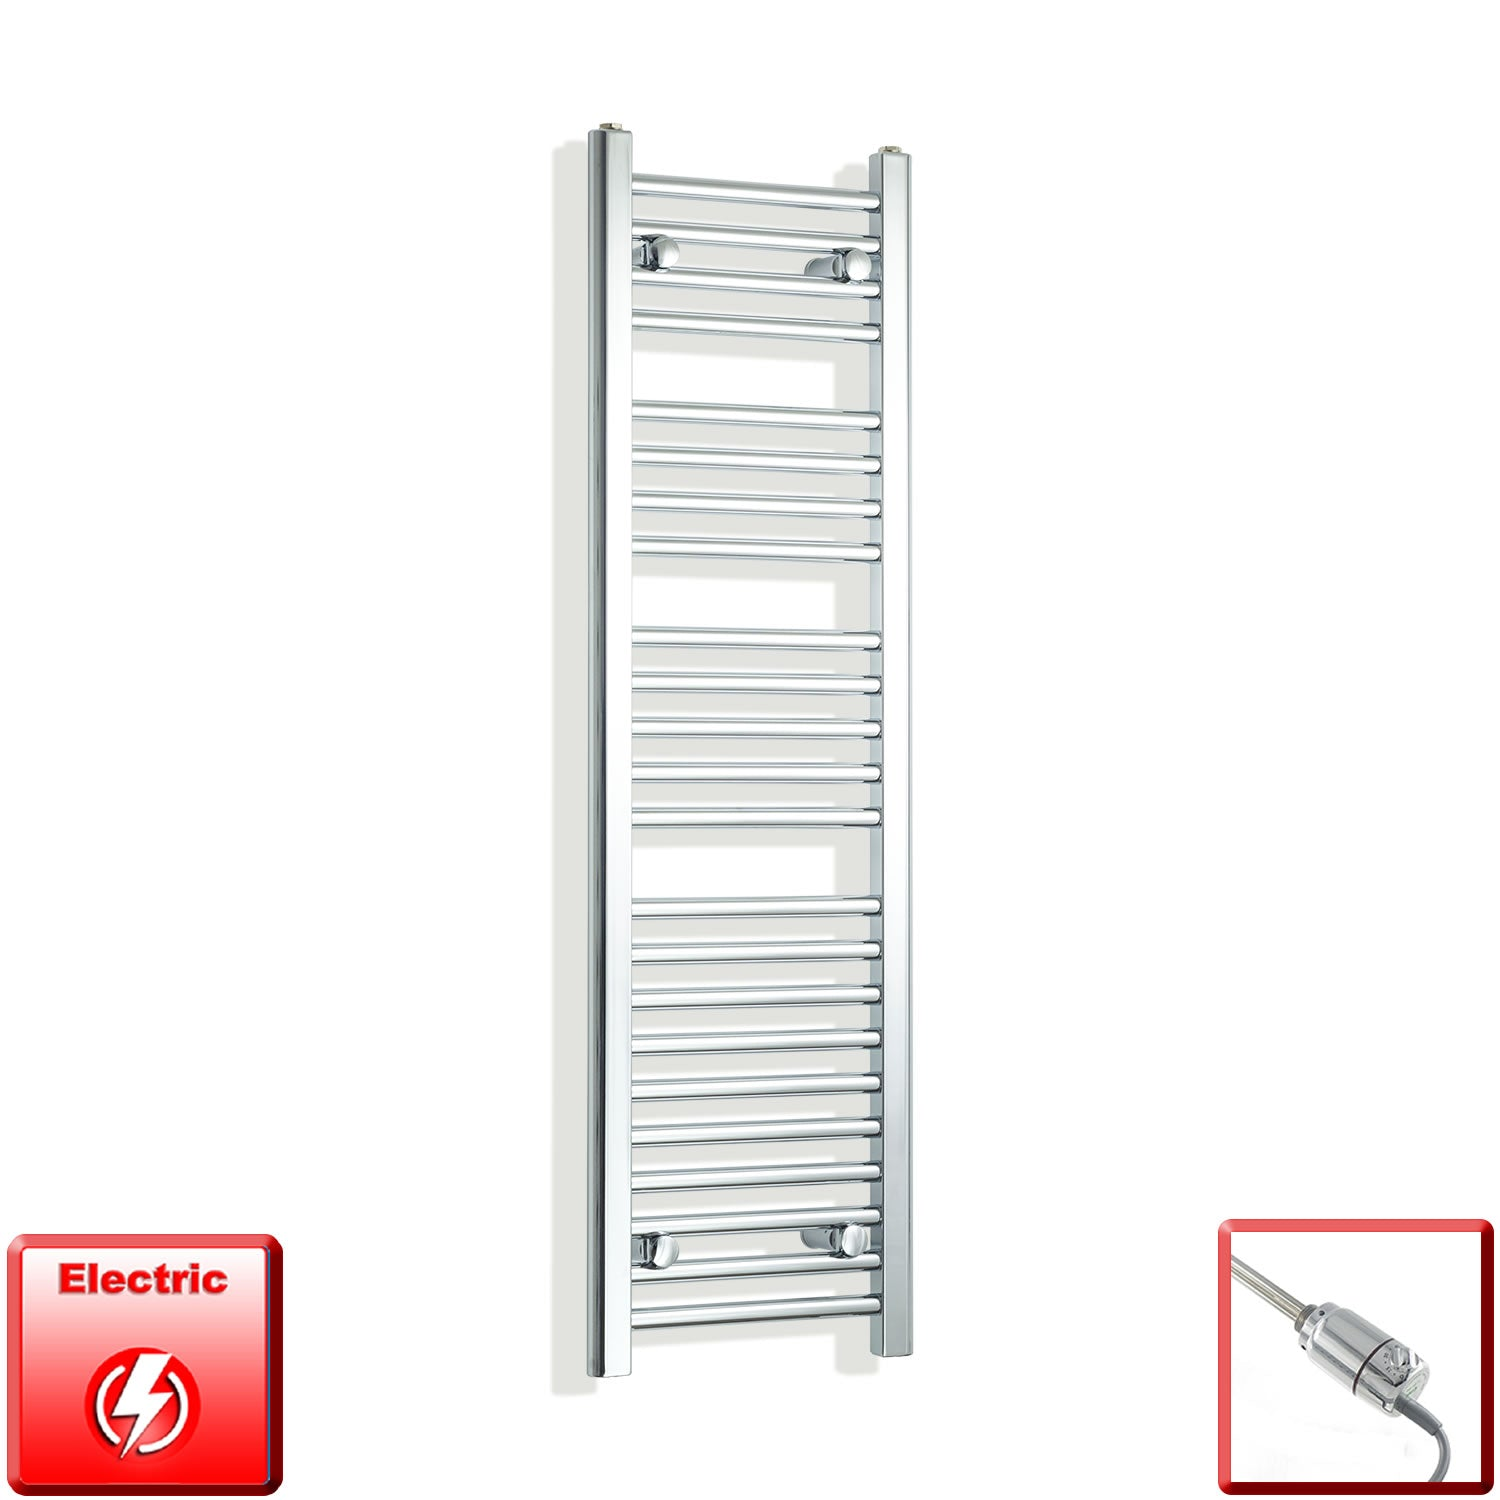 300mm Wide 1200mm High Flat Chrome Pre-Filled Electric Heated Towel Rail Radiator HTR,GT Thermostatic